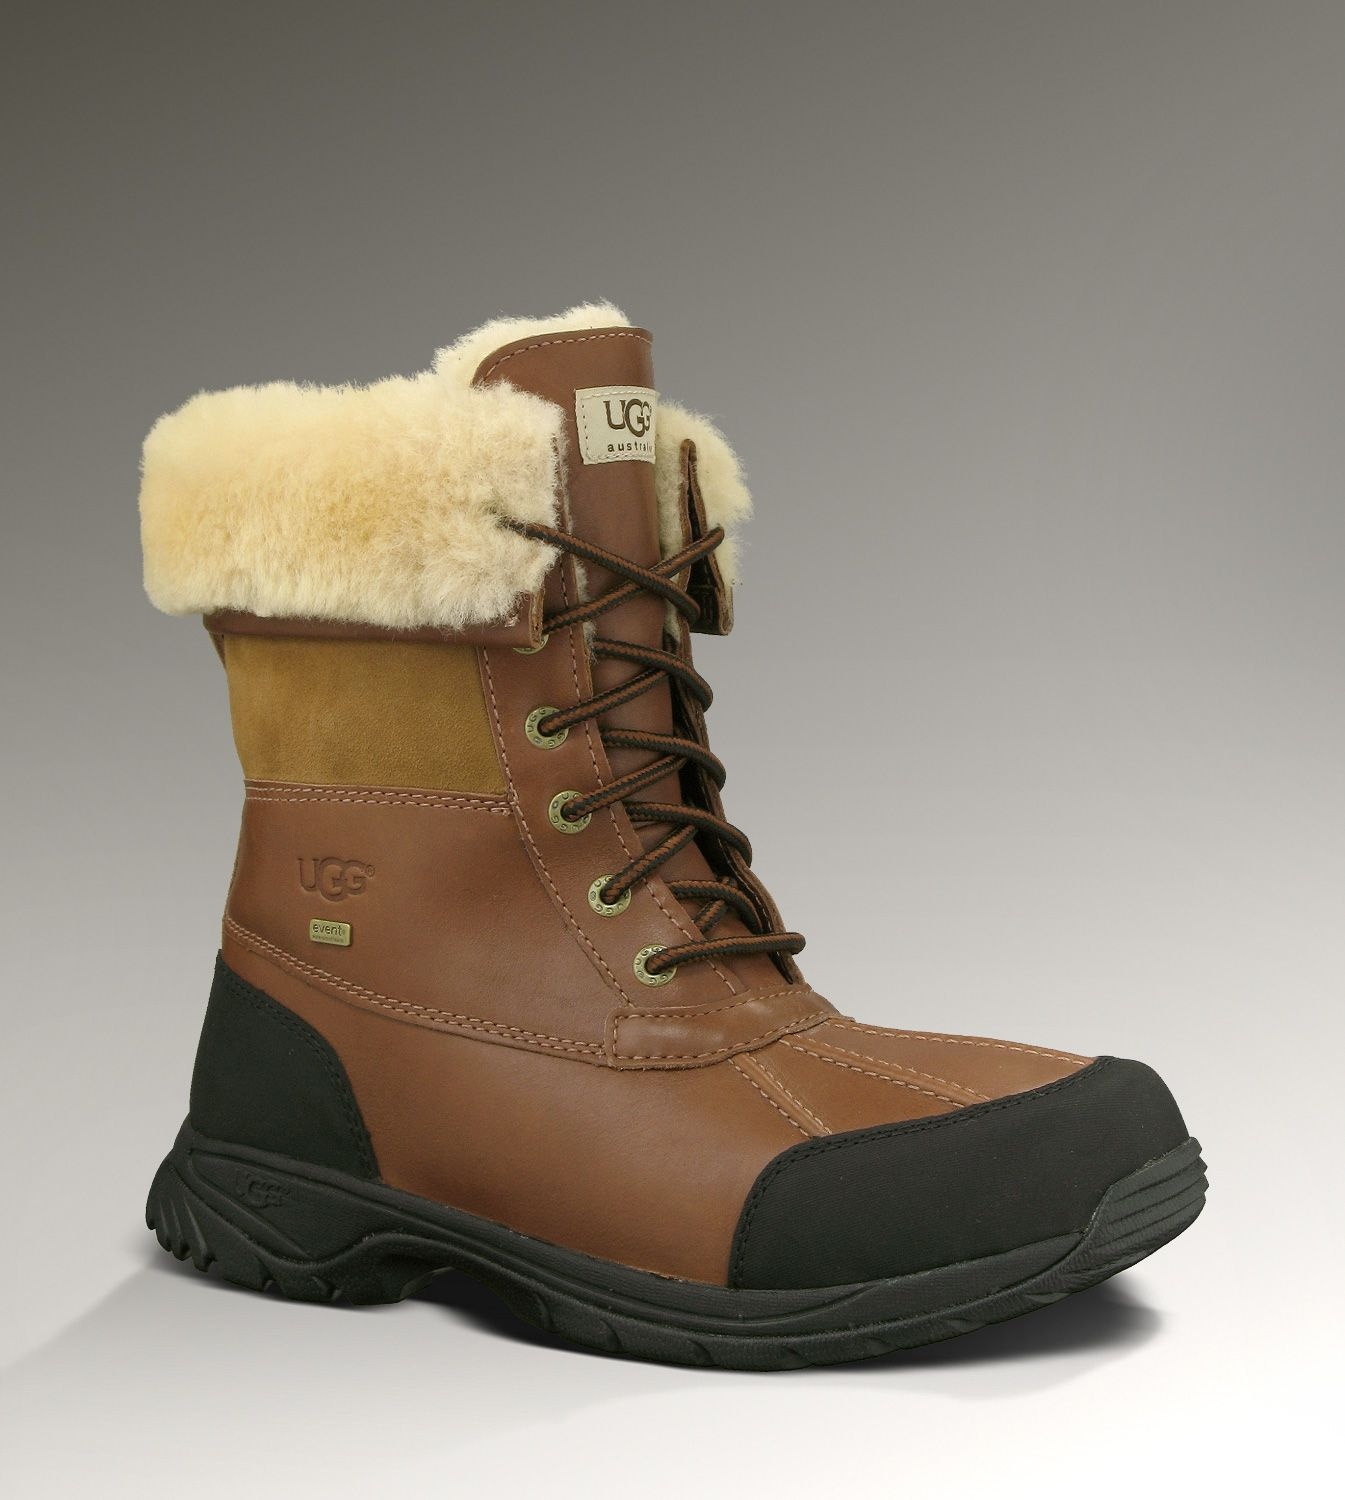 UGG Boots for Men  3b586f97a6e74